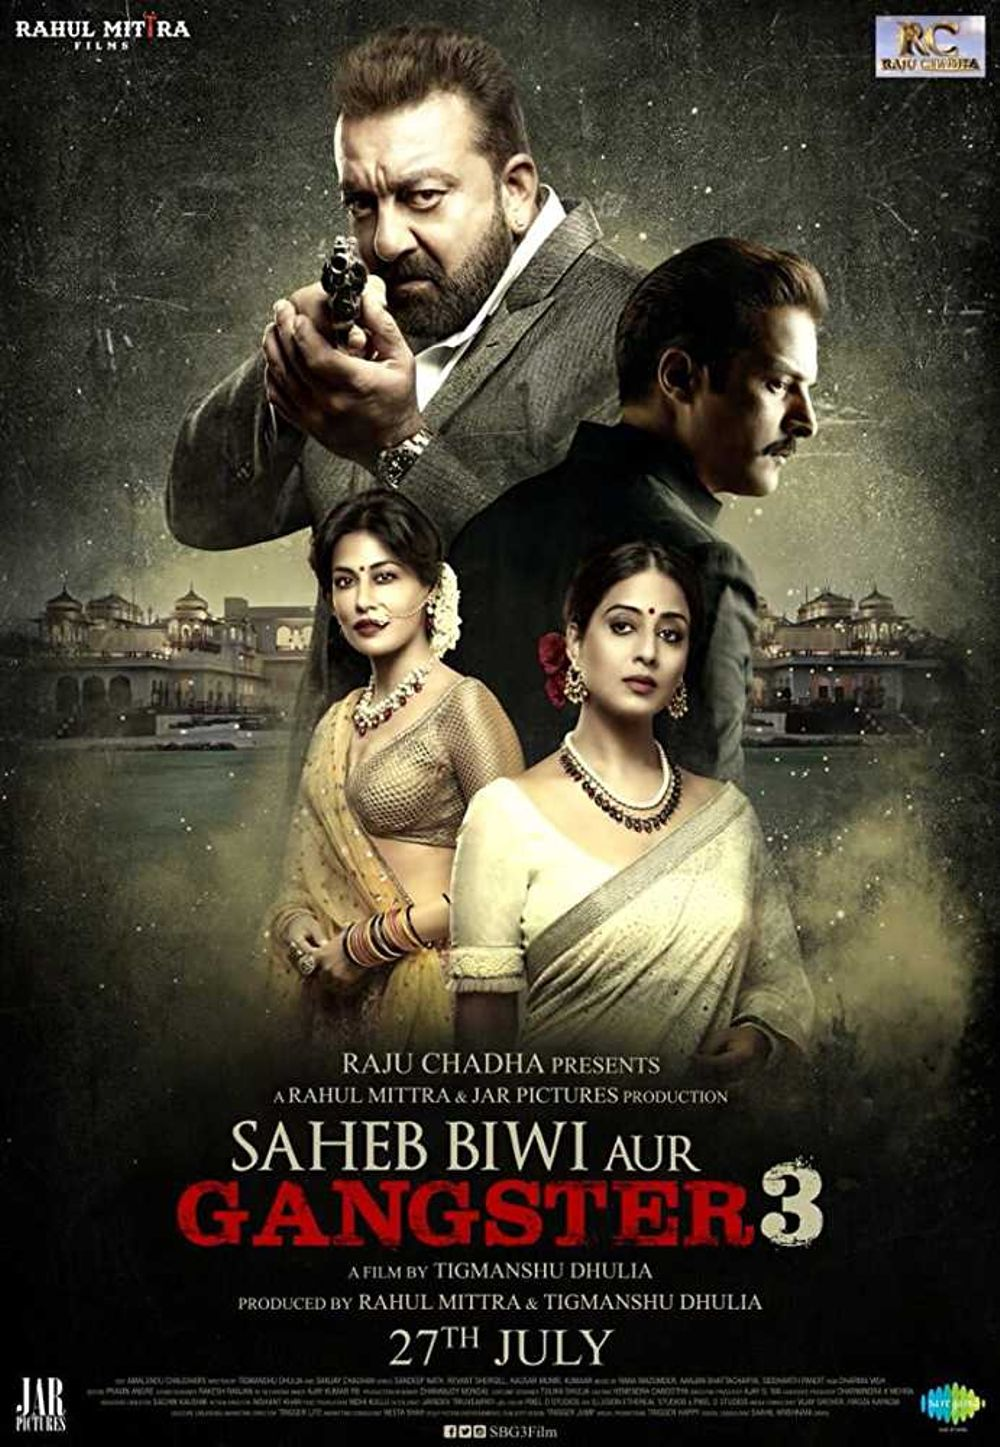 Saheb Biwi Aur Gangster 3 Movie Review Hindi Movie Review